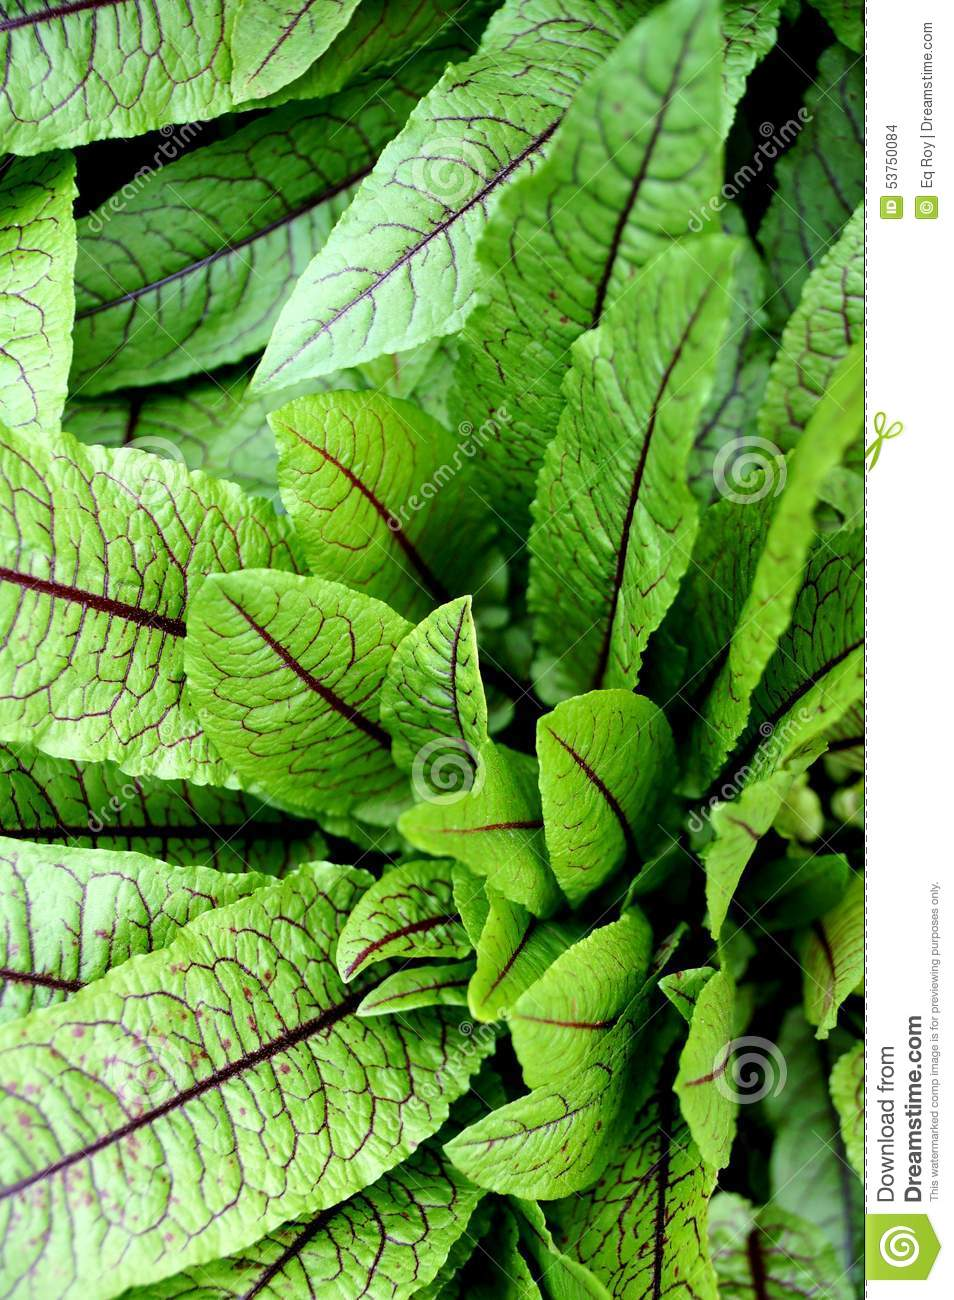 Blood Dock Red Sorrel Plant Rumex Sanguineus Stock Photo.